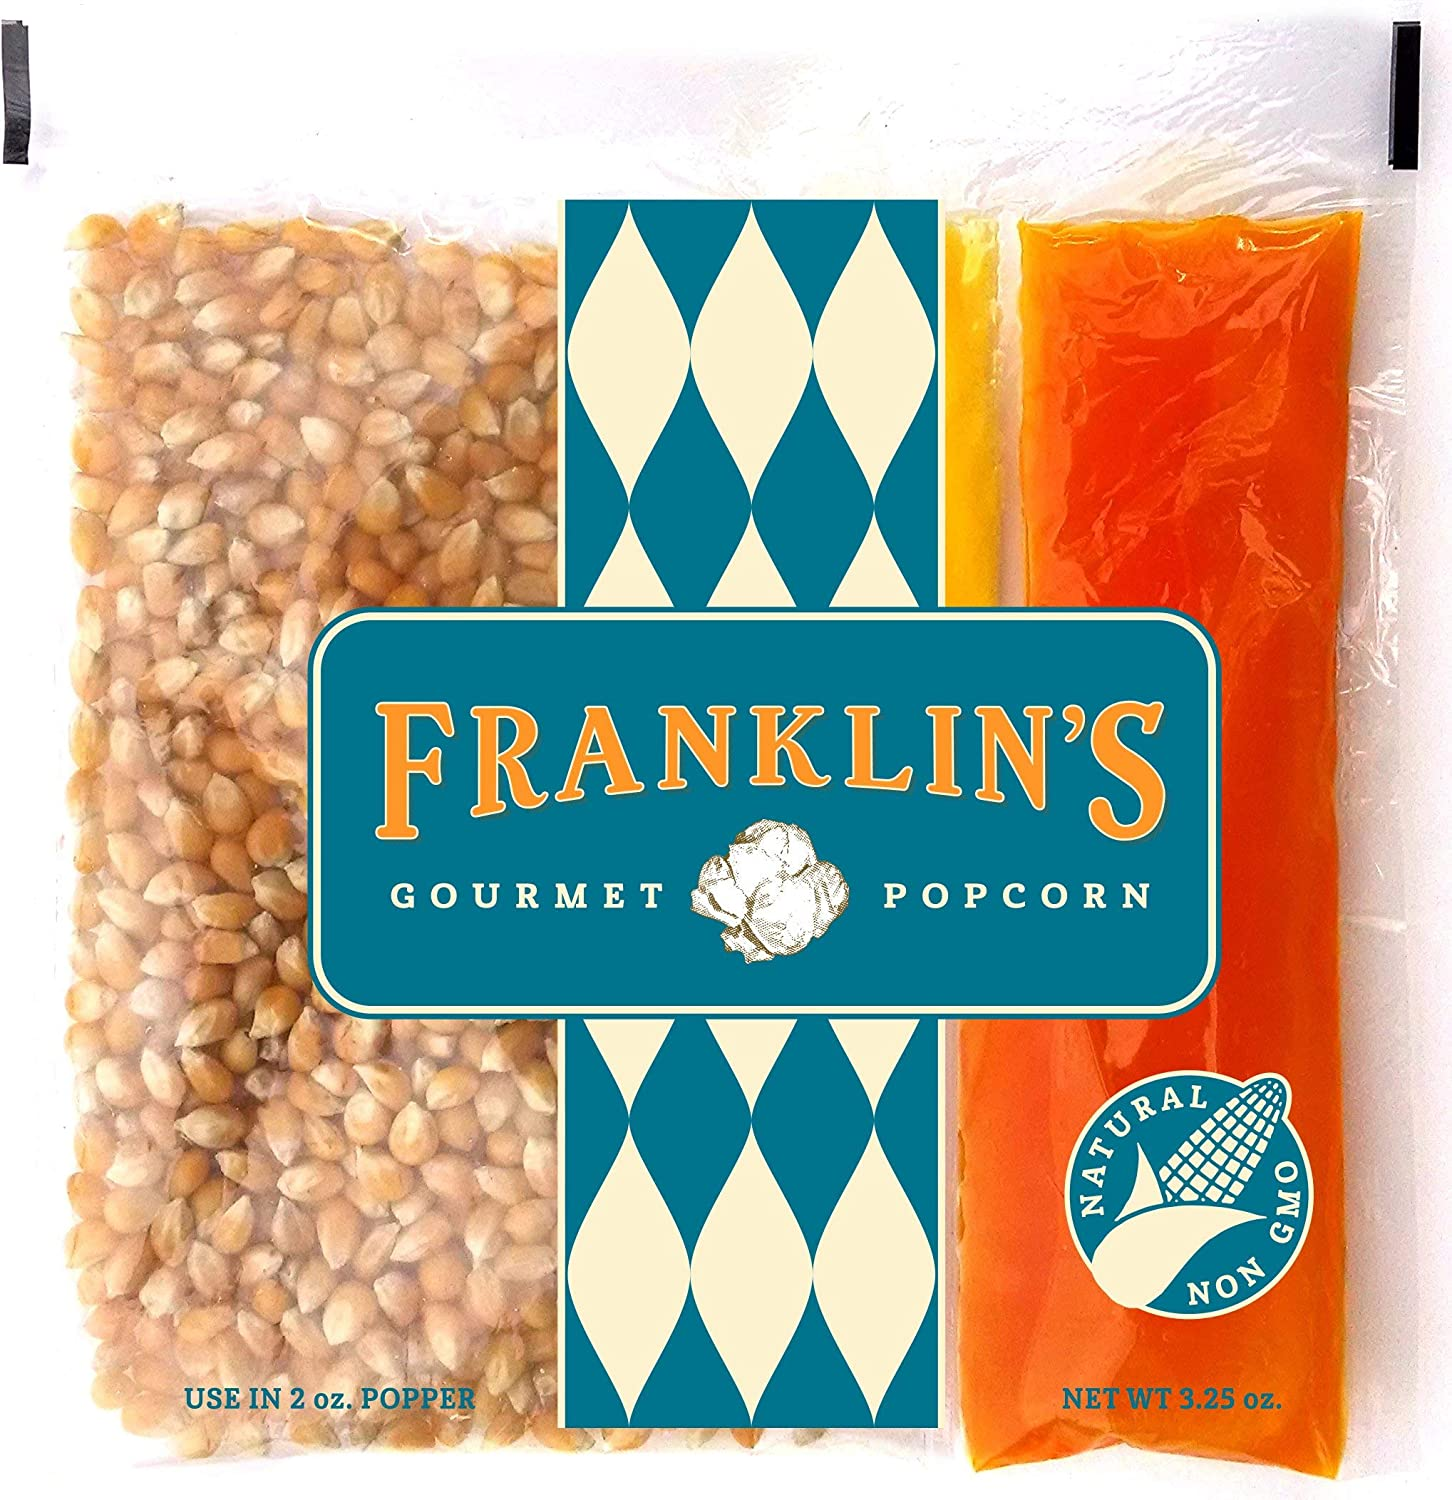 Franklin's Gourmet Popcorn All-In-One Pre-Measured Packs - 2oz. Pack of 24 - Butter Flavored Coconut Oil + Butter Salt Popcorn Seasoning + Organic Corn - Authentic Movie Theater Taste – Made in USA